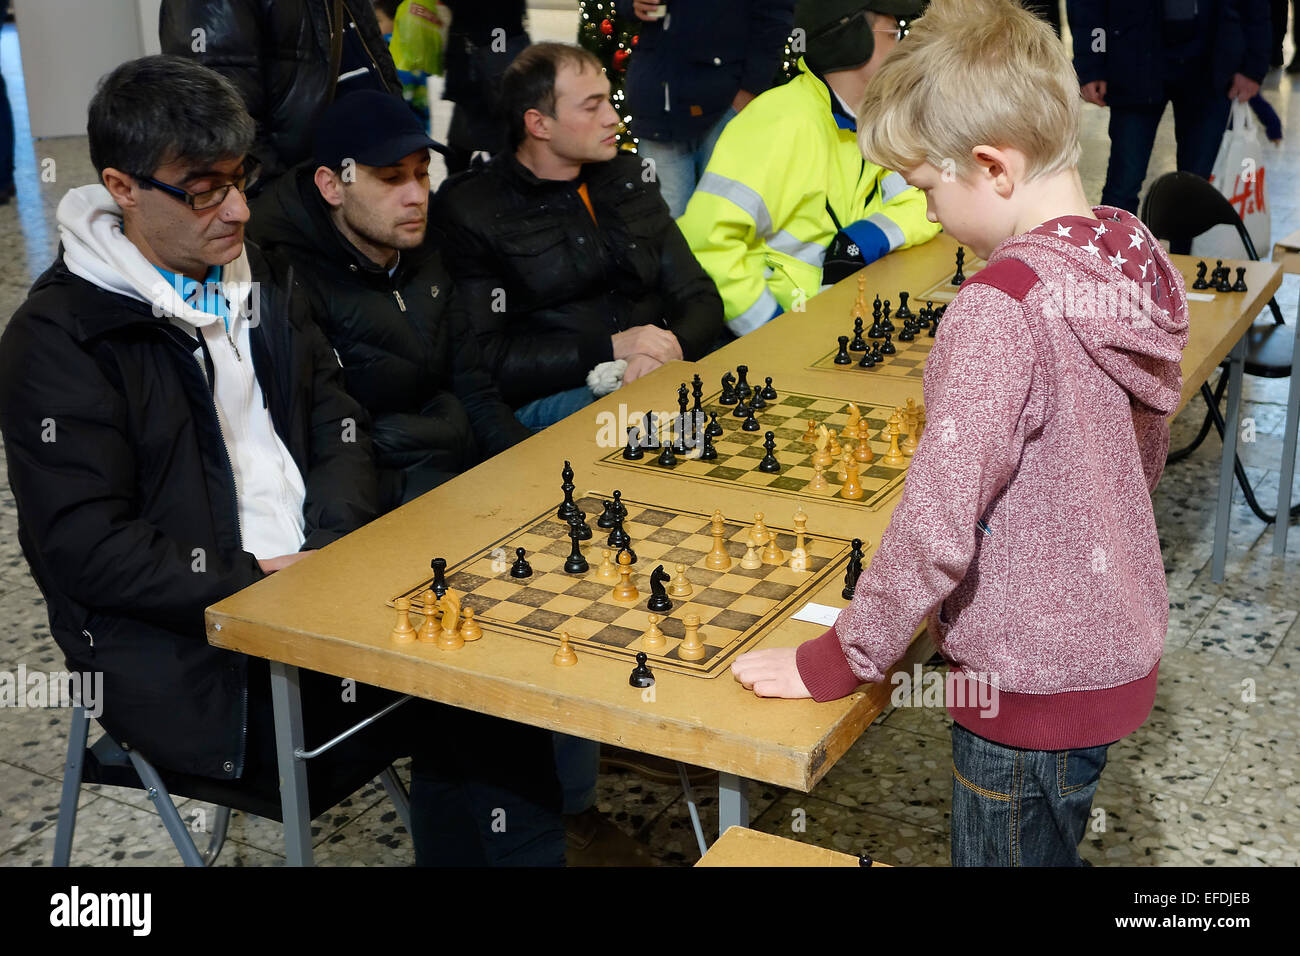 10 years old boy plays simultaneous chess game with 4 adult participants .  Nordstan, Göteborg,  Gothenburg, - Stock Image